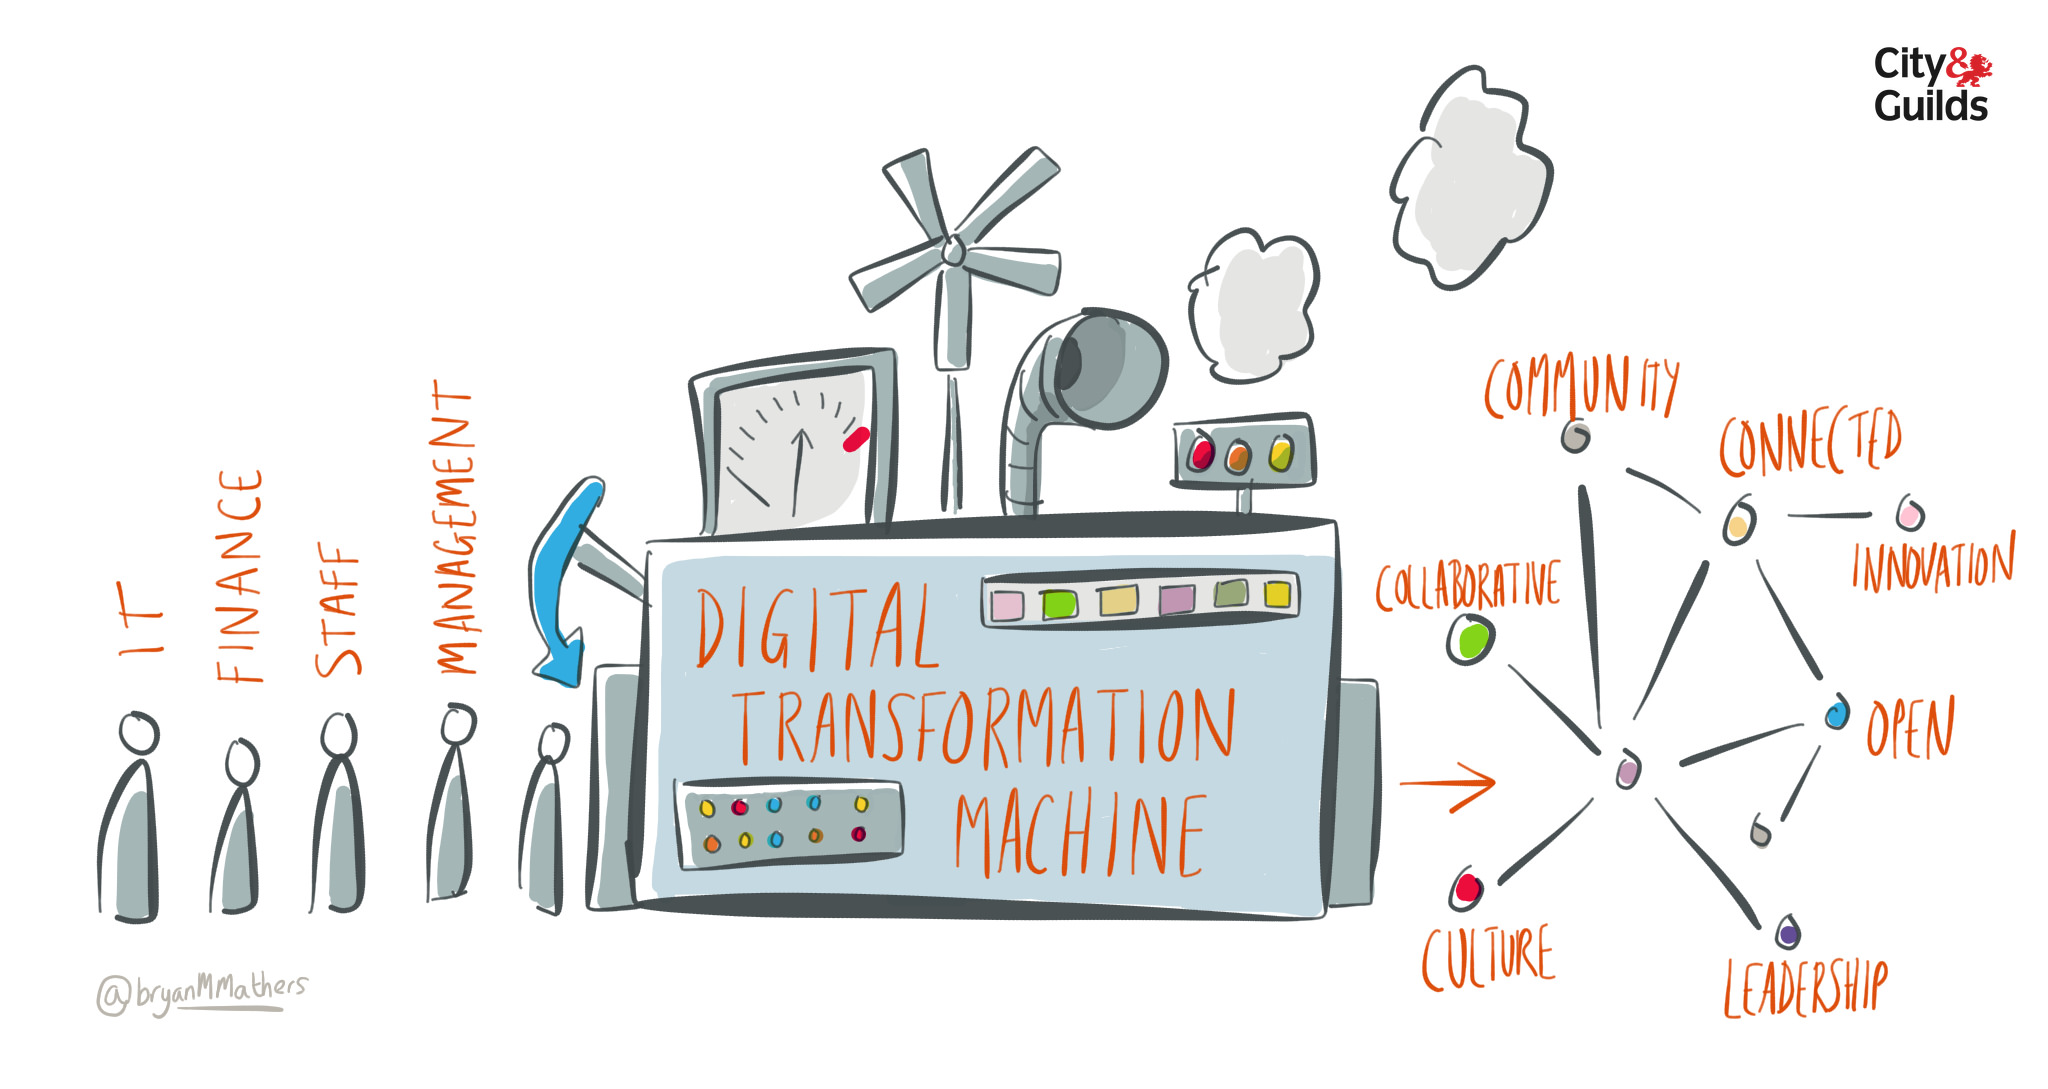 Digital Transformation Machine